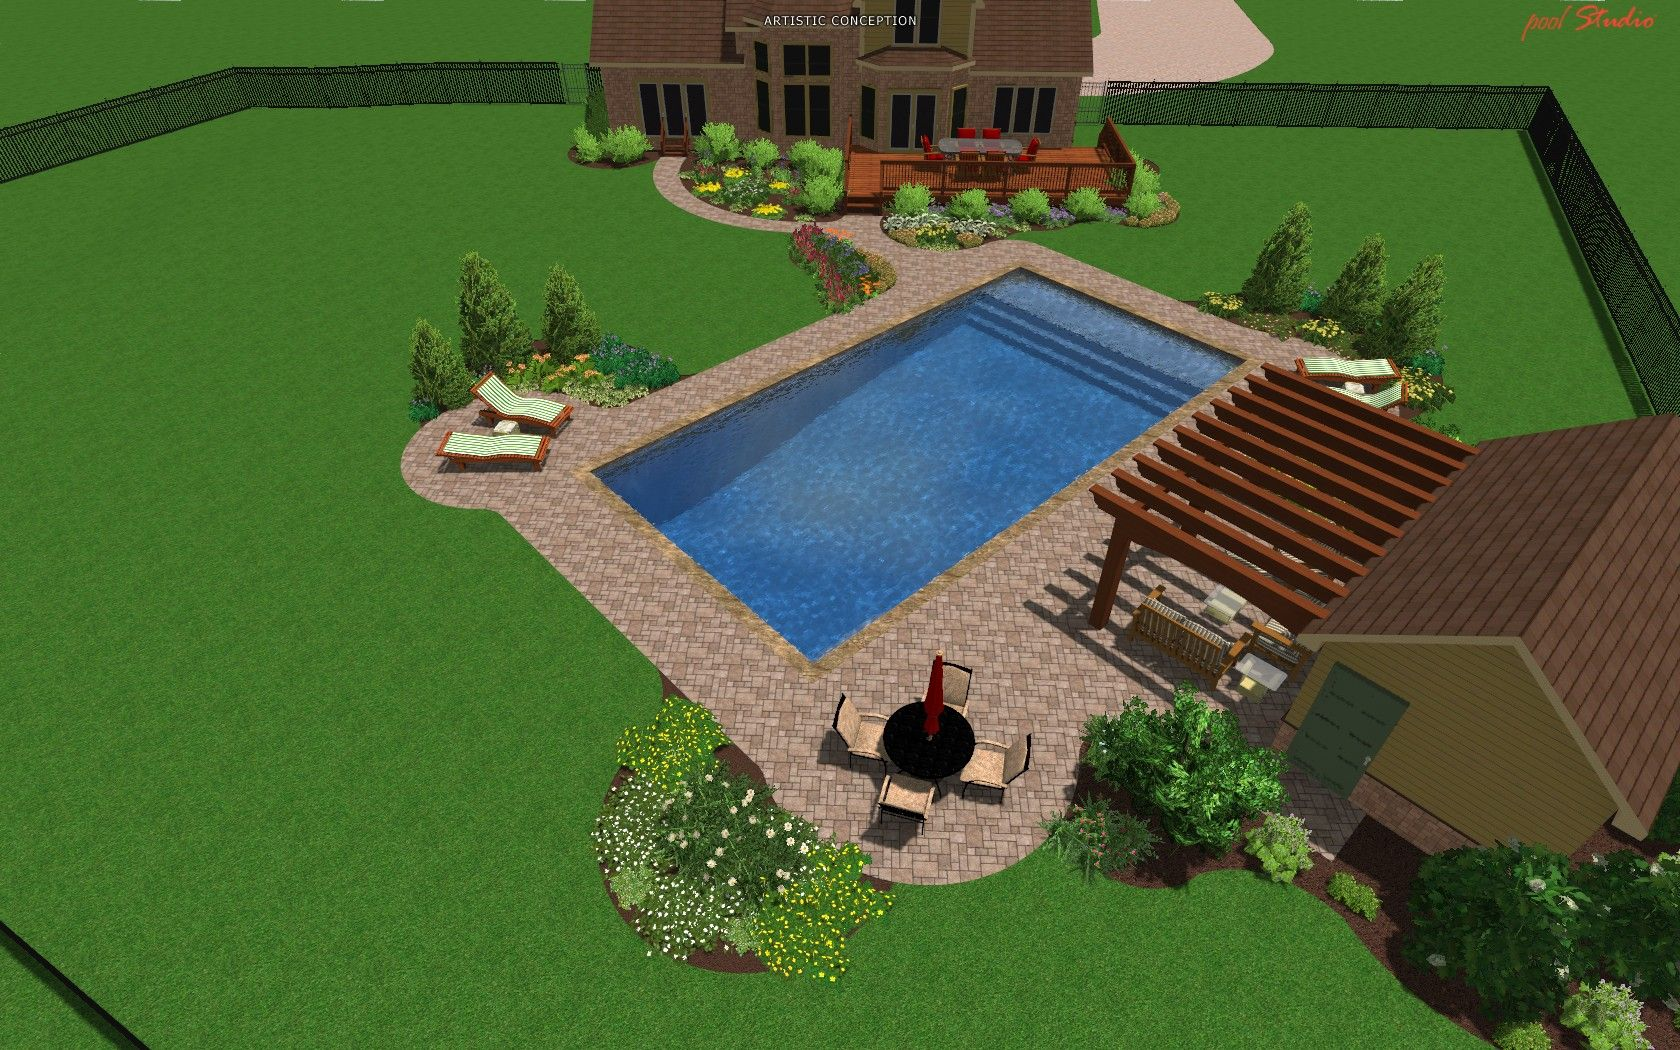 Inground Pool Landscaping Ideas in ground pool design ideas pool designs for small backyards inground pool designs for small backyards Pool Landscaping Ideas Pool Landscape Design Michigan Michigan Pool Designs